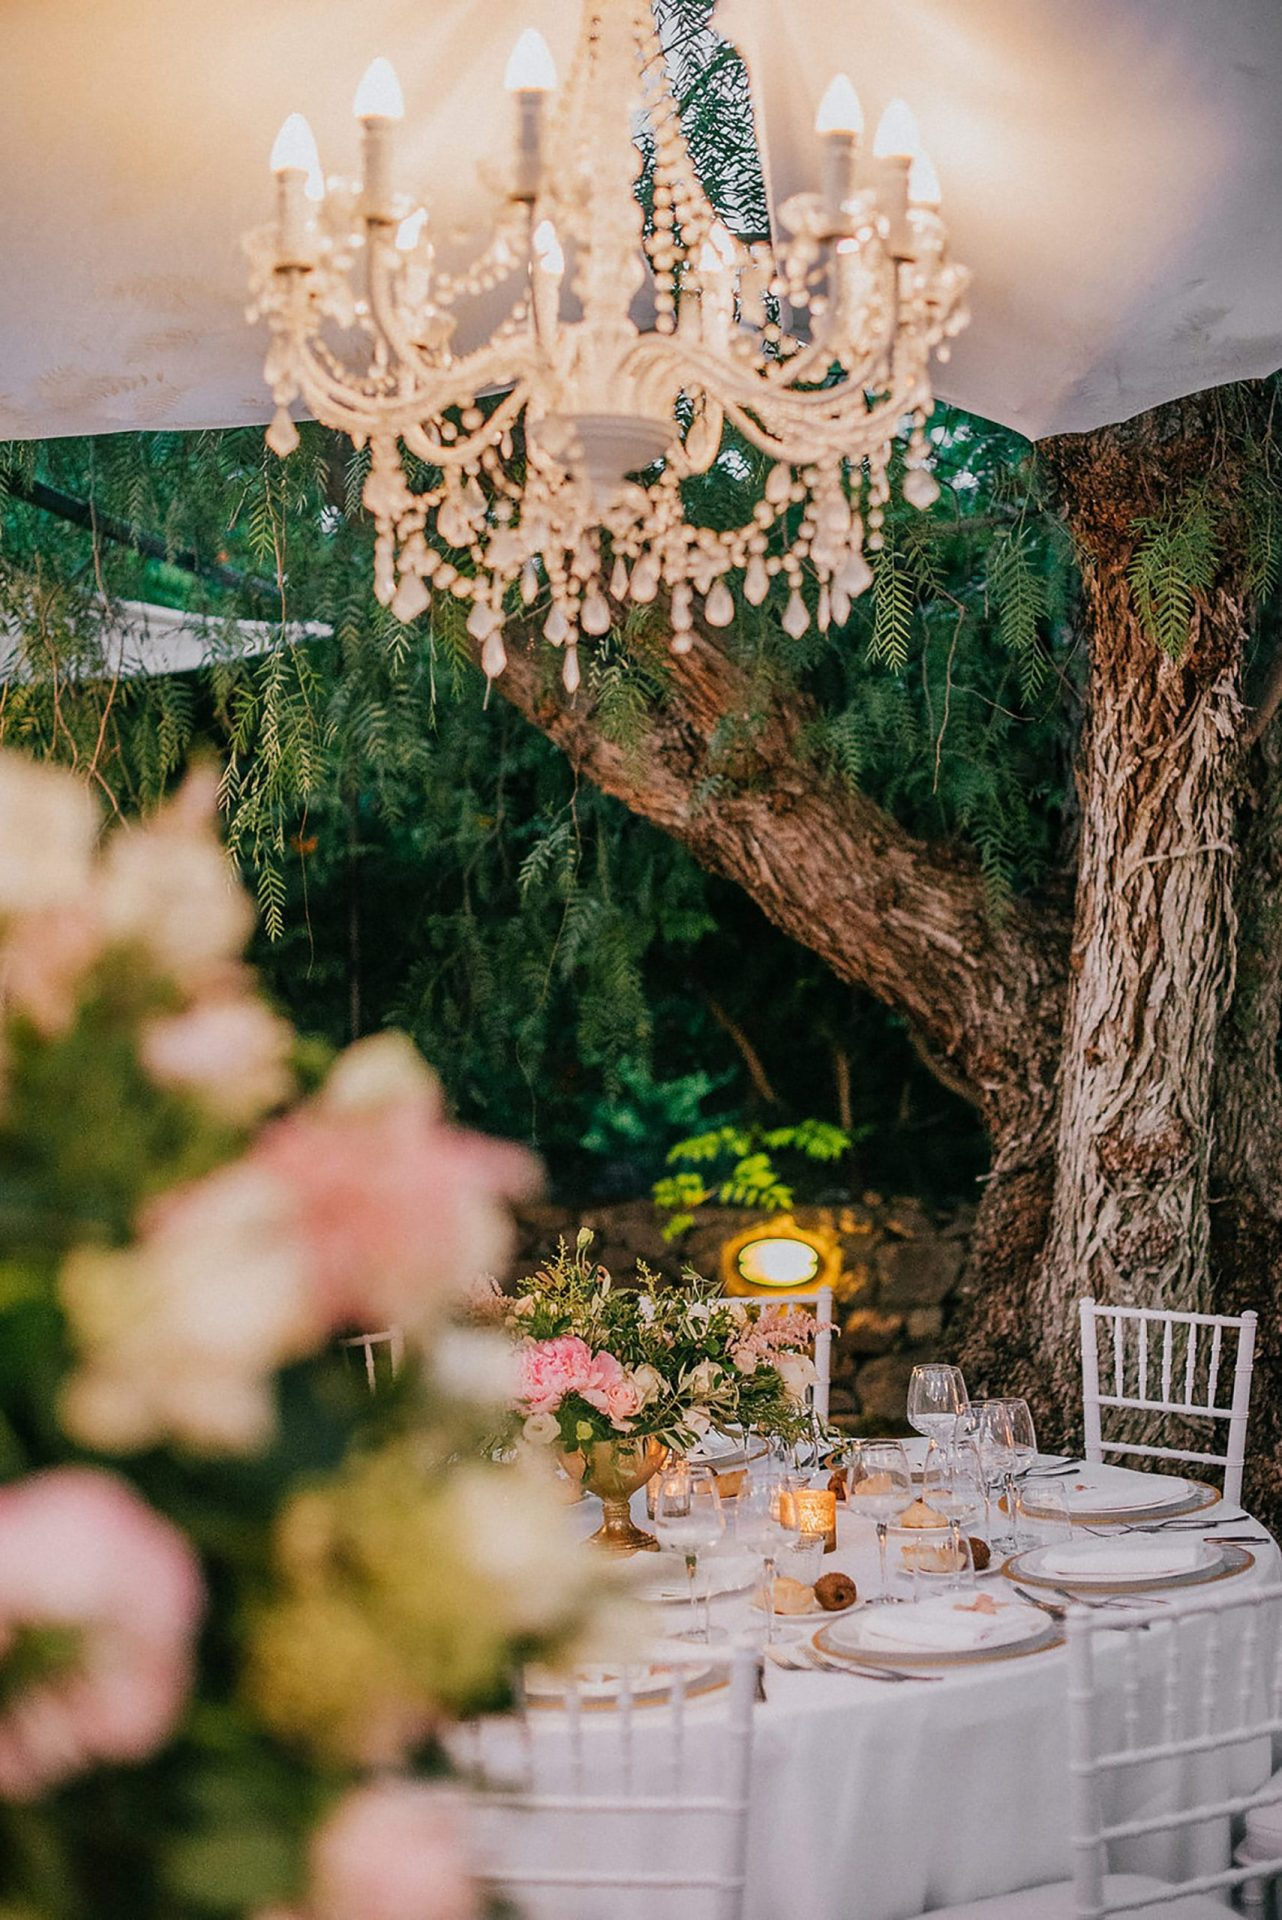 Ilaria e Giovanni, al fresco wedding reception, chandelier